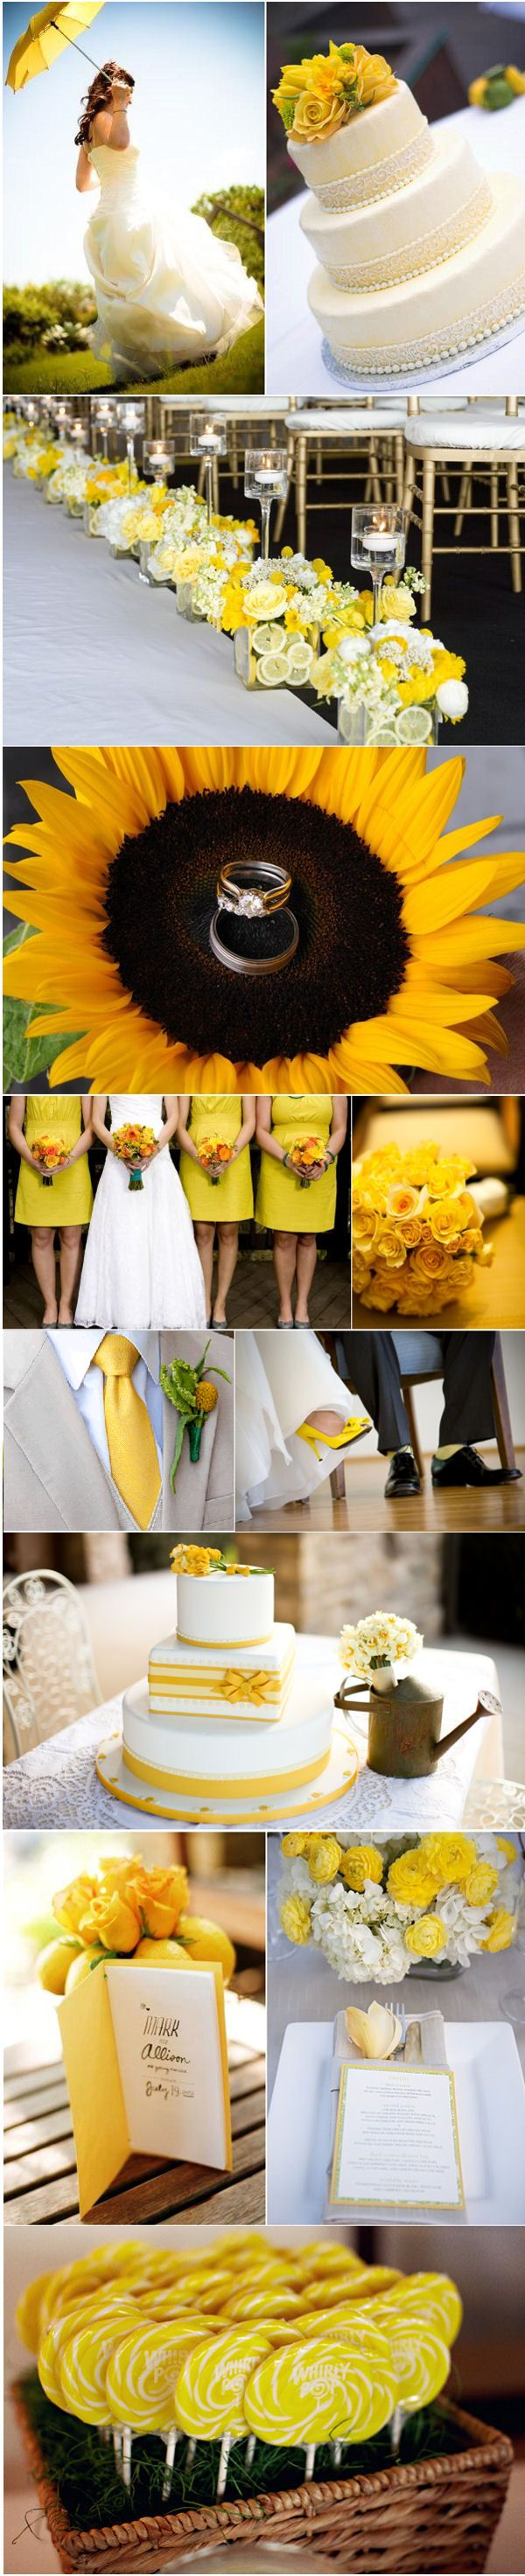 Uncategorized Yellow Color Schemes best 25 yellow color schemes ideas on pinterest palettes combinations and seeds schemes